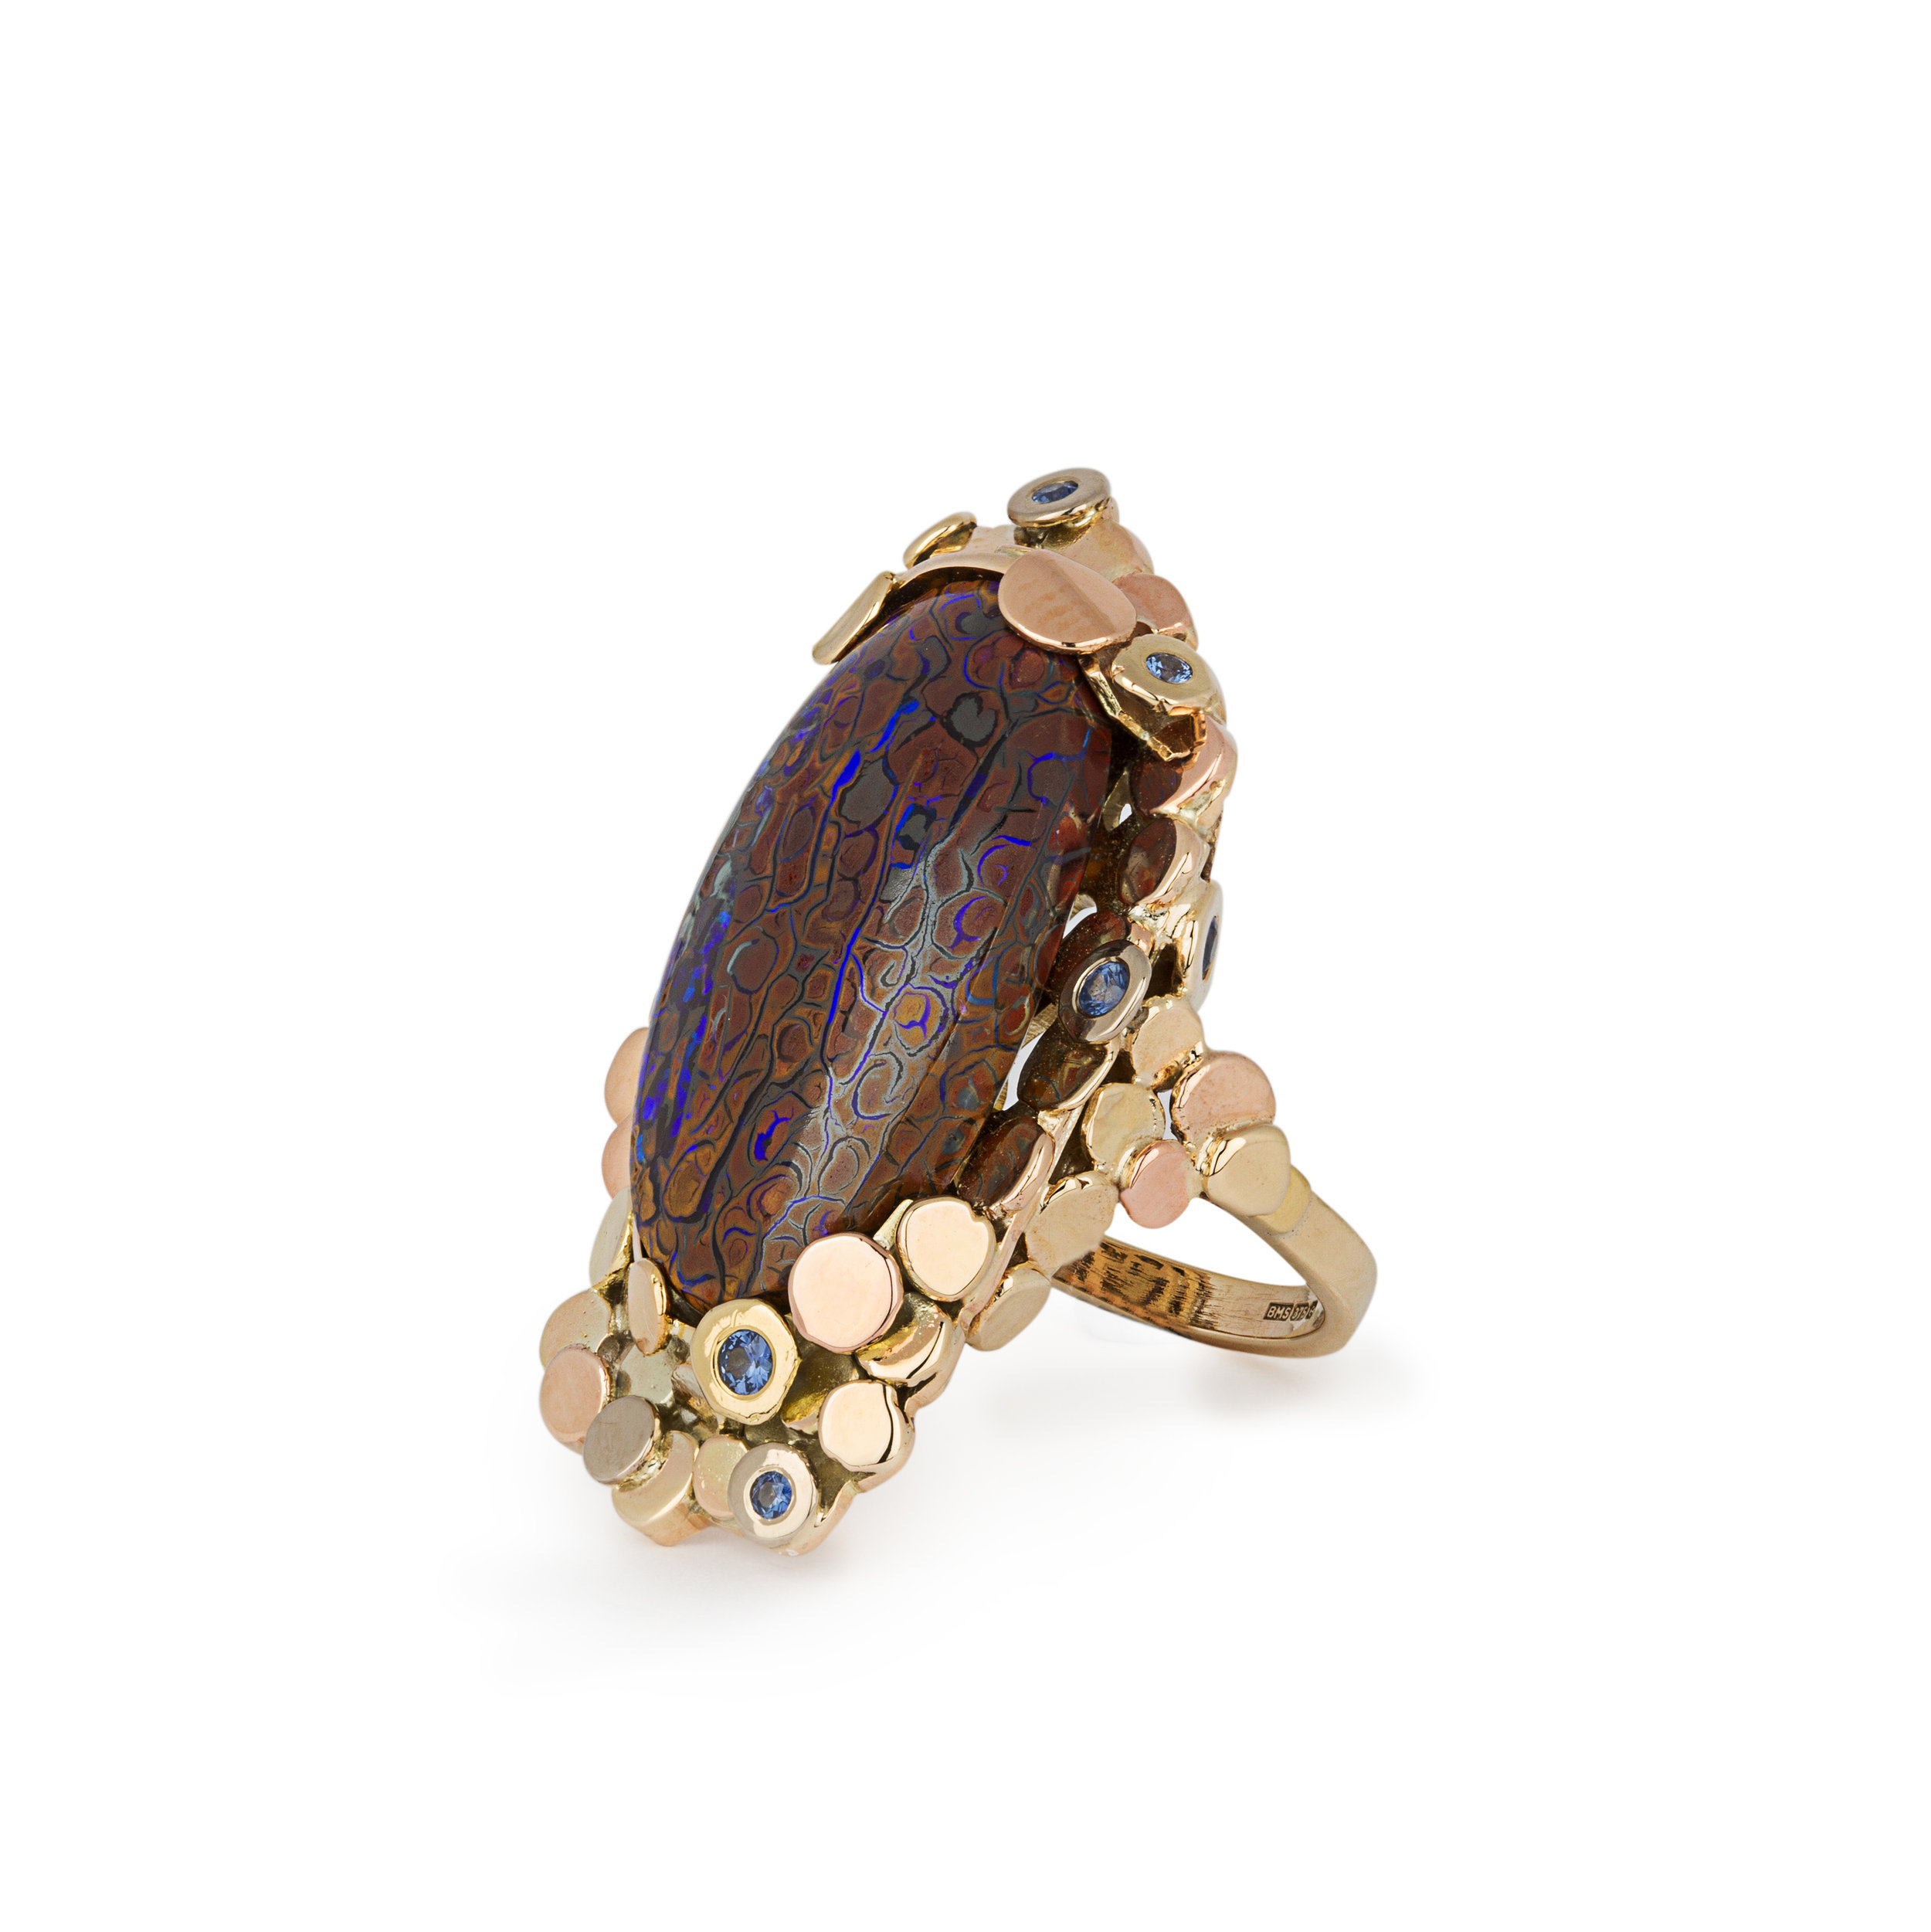 Recovered ship wrecked coins was the idea behind this ring a large koroite boulder opal with ceylon blue sapphires set around the design in mixed colours of gold 9ct and 18ct